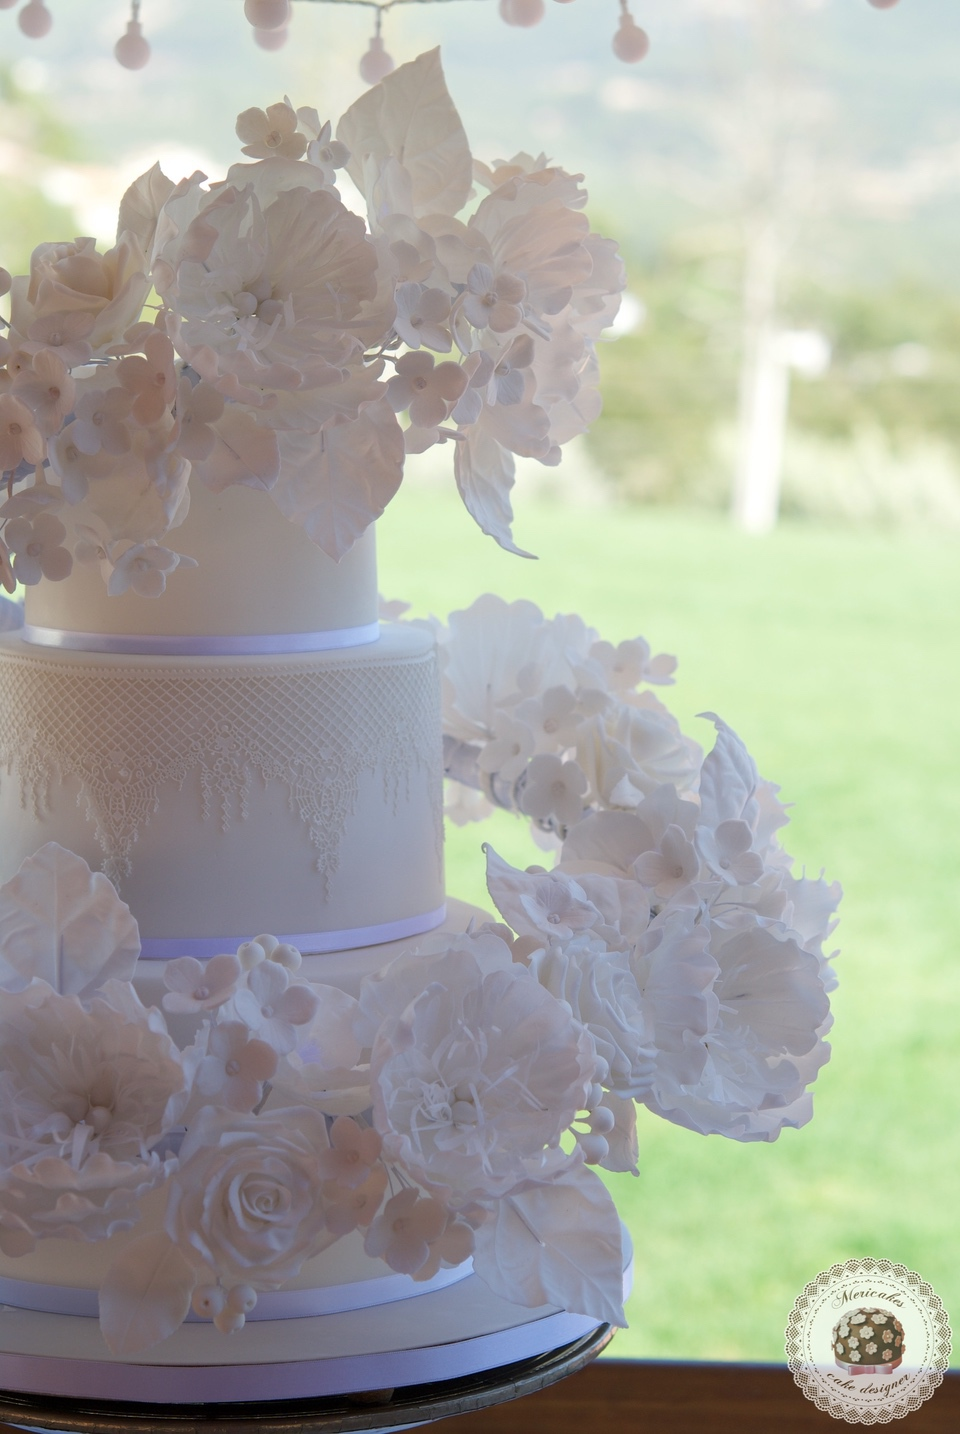 Floating floral cascade Wedding Cake, luxury wedding cake, tartas de boda, flores de azucar, sugar flowers, mericakes, rose and almond cake, champagne cream, barcelona, tarta fondant, sugar lace, 3